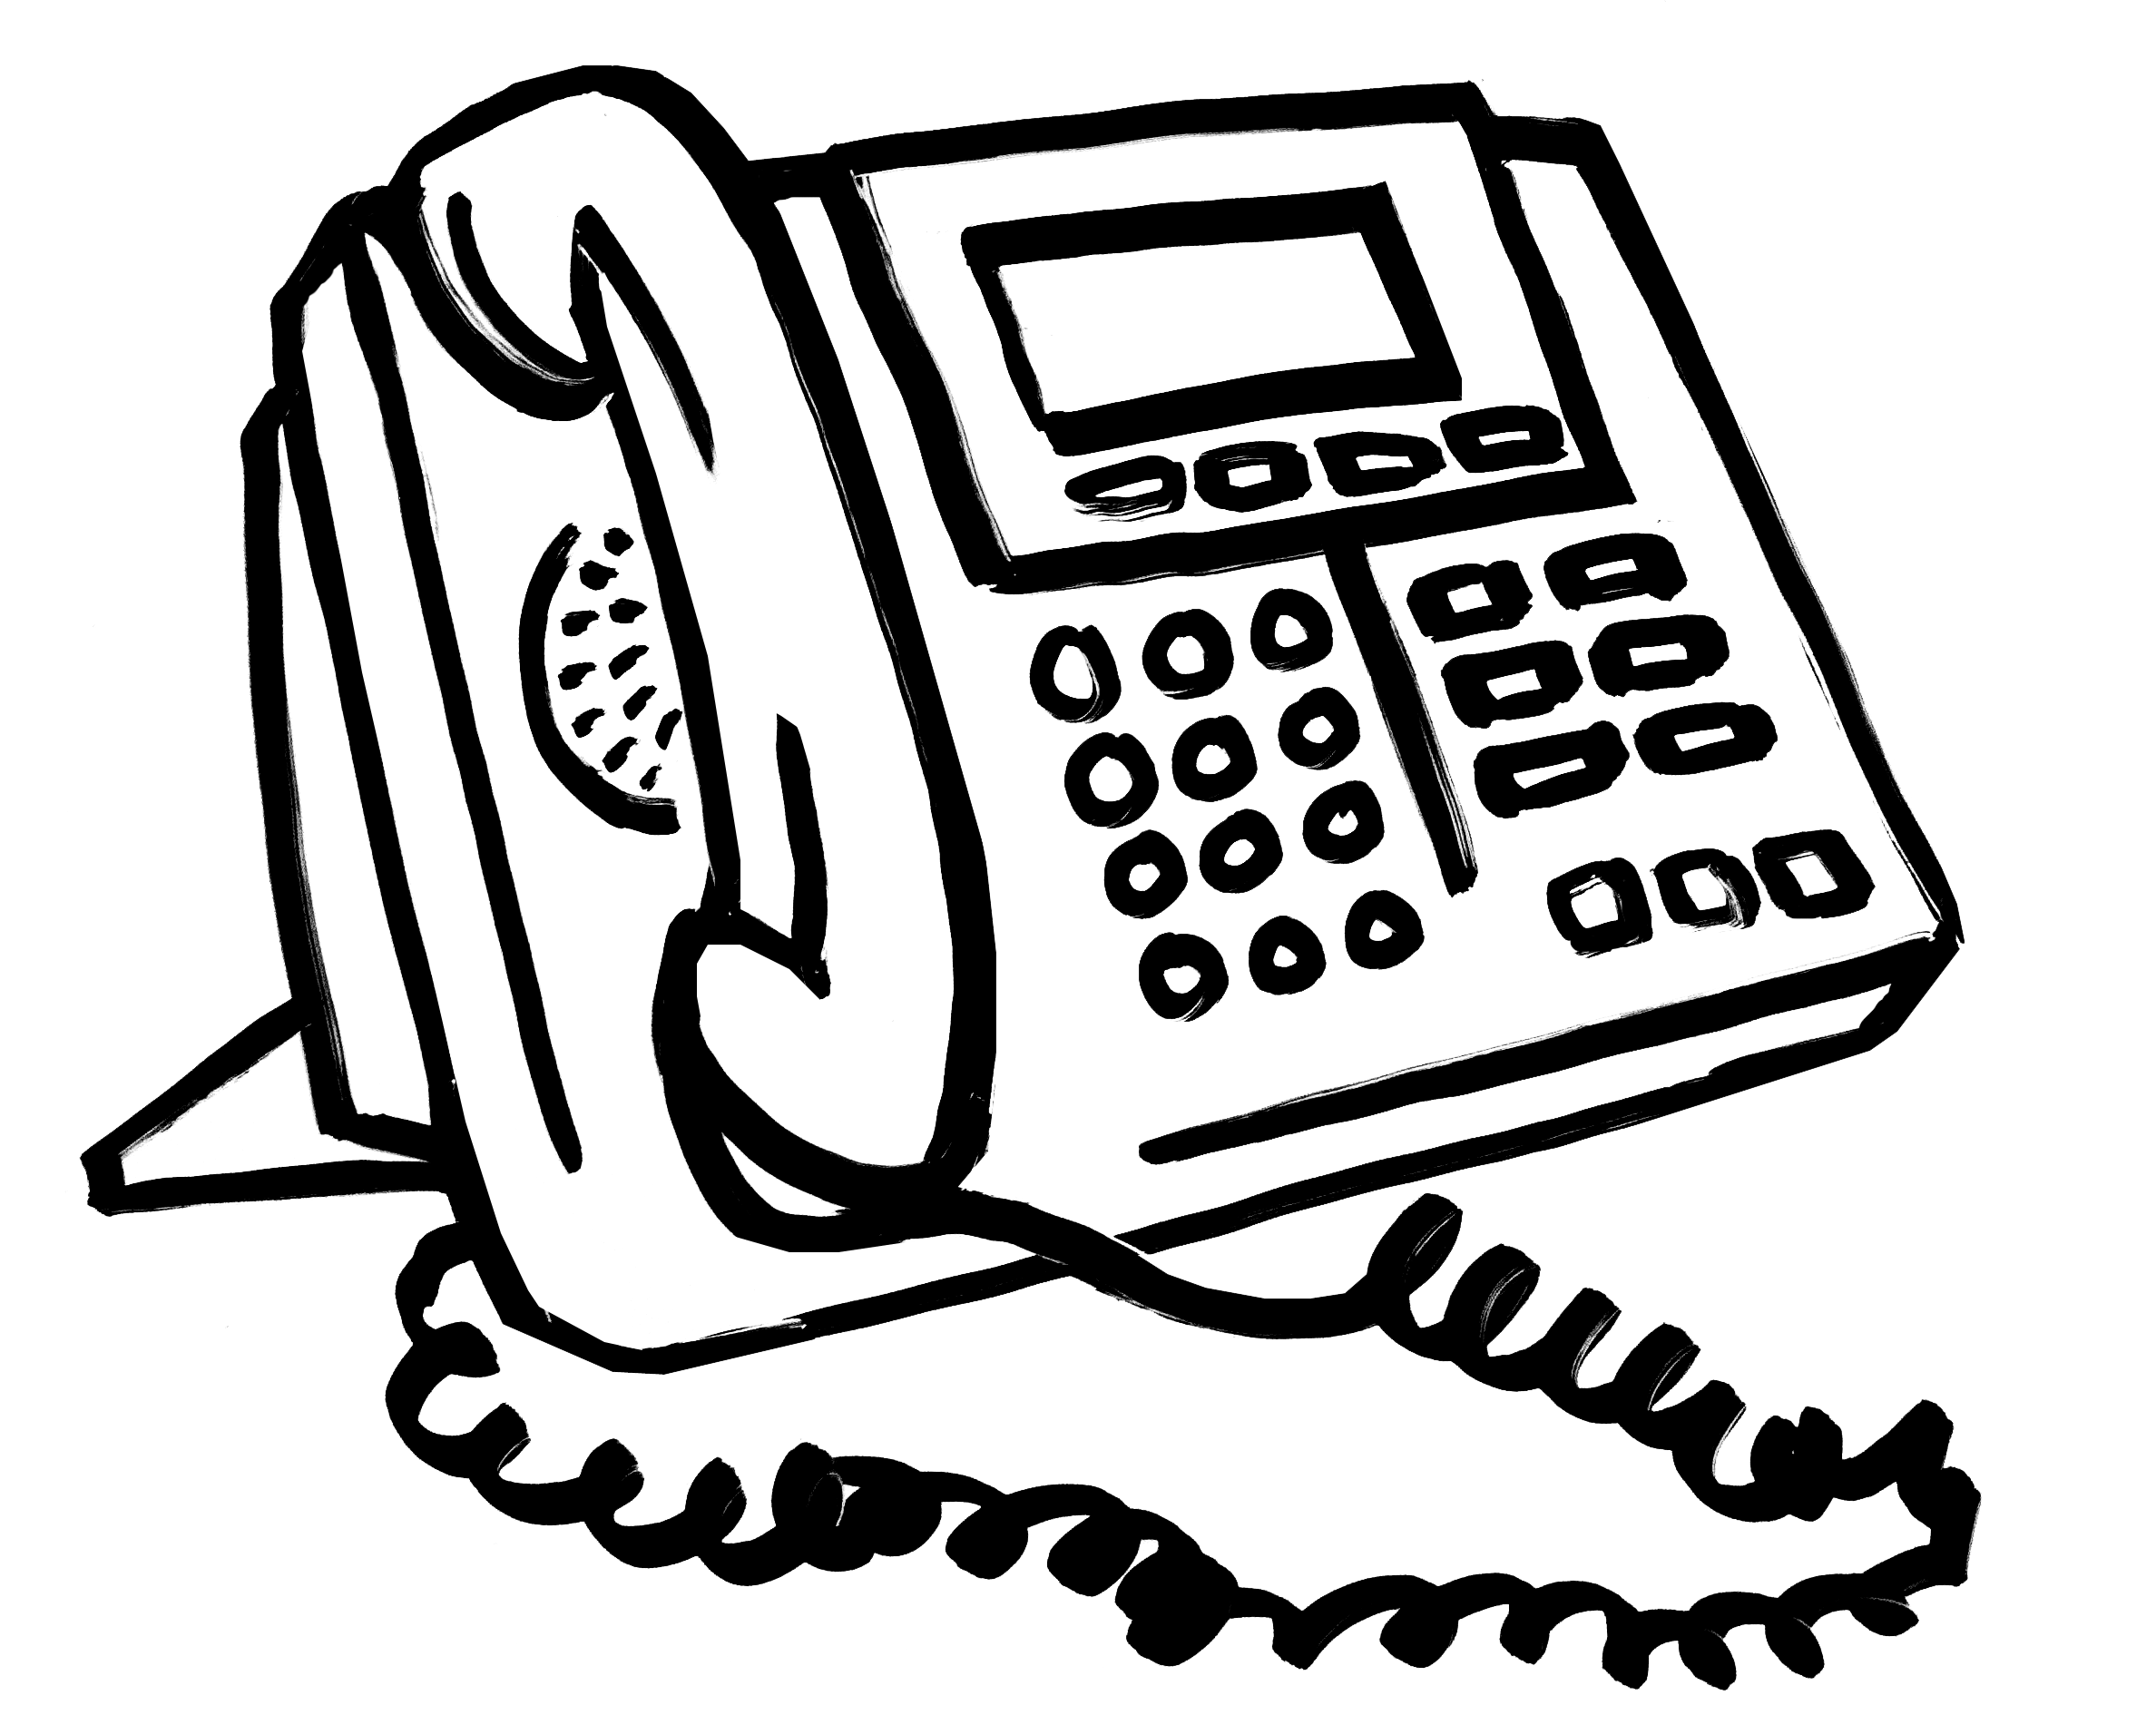 Next day animations . Telephone clipart office phone